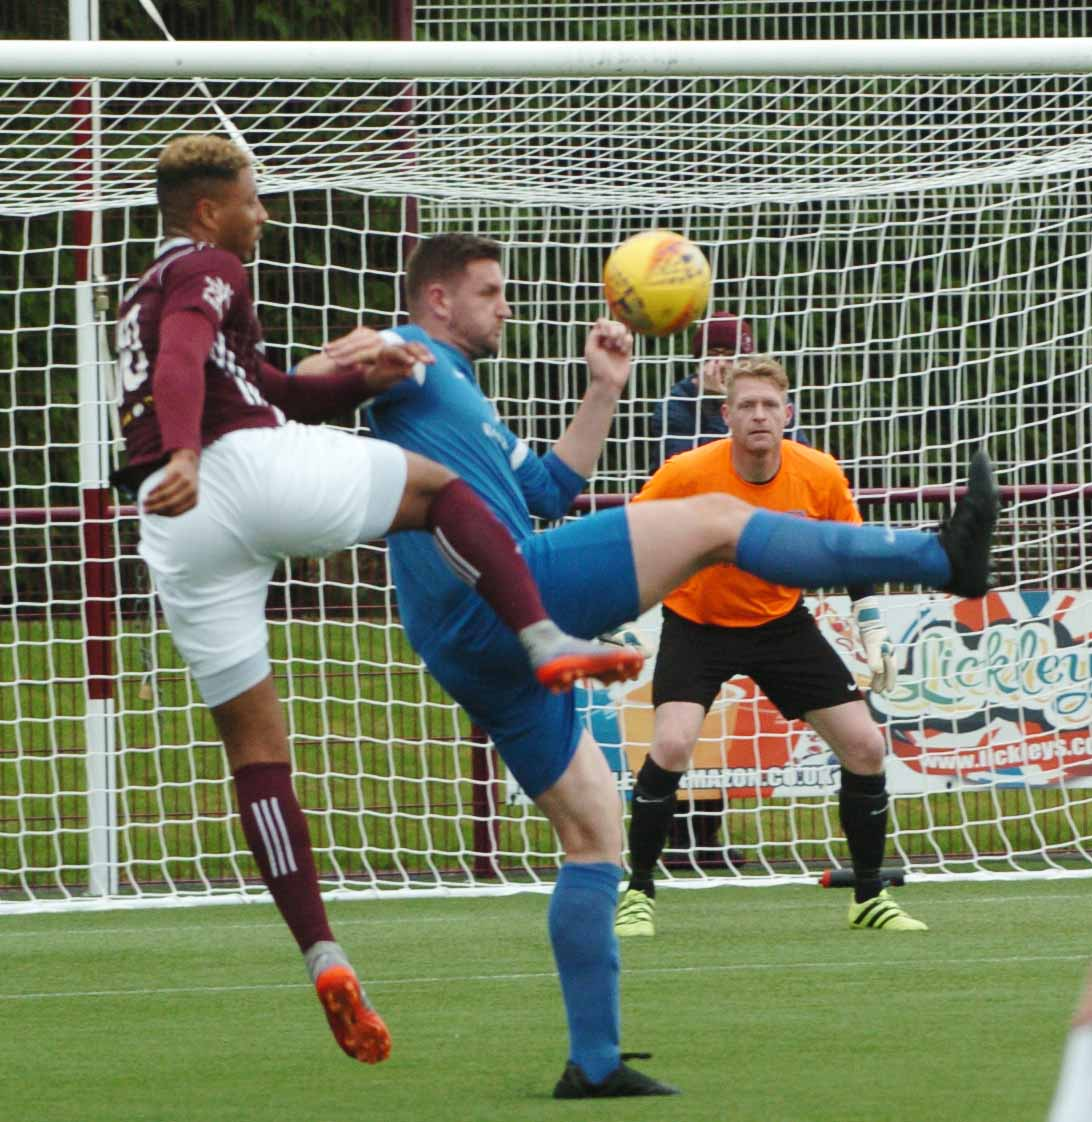 Errol Douglas, in action earlier this season, scored one of Kelty's goals on Saturday.